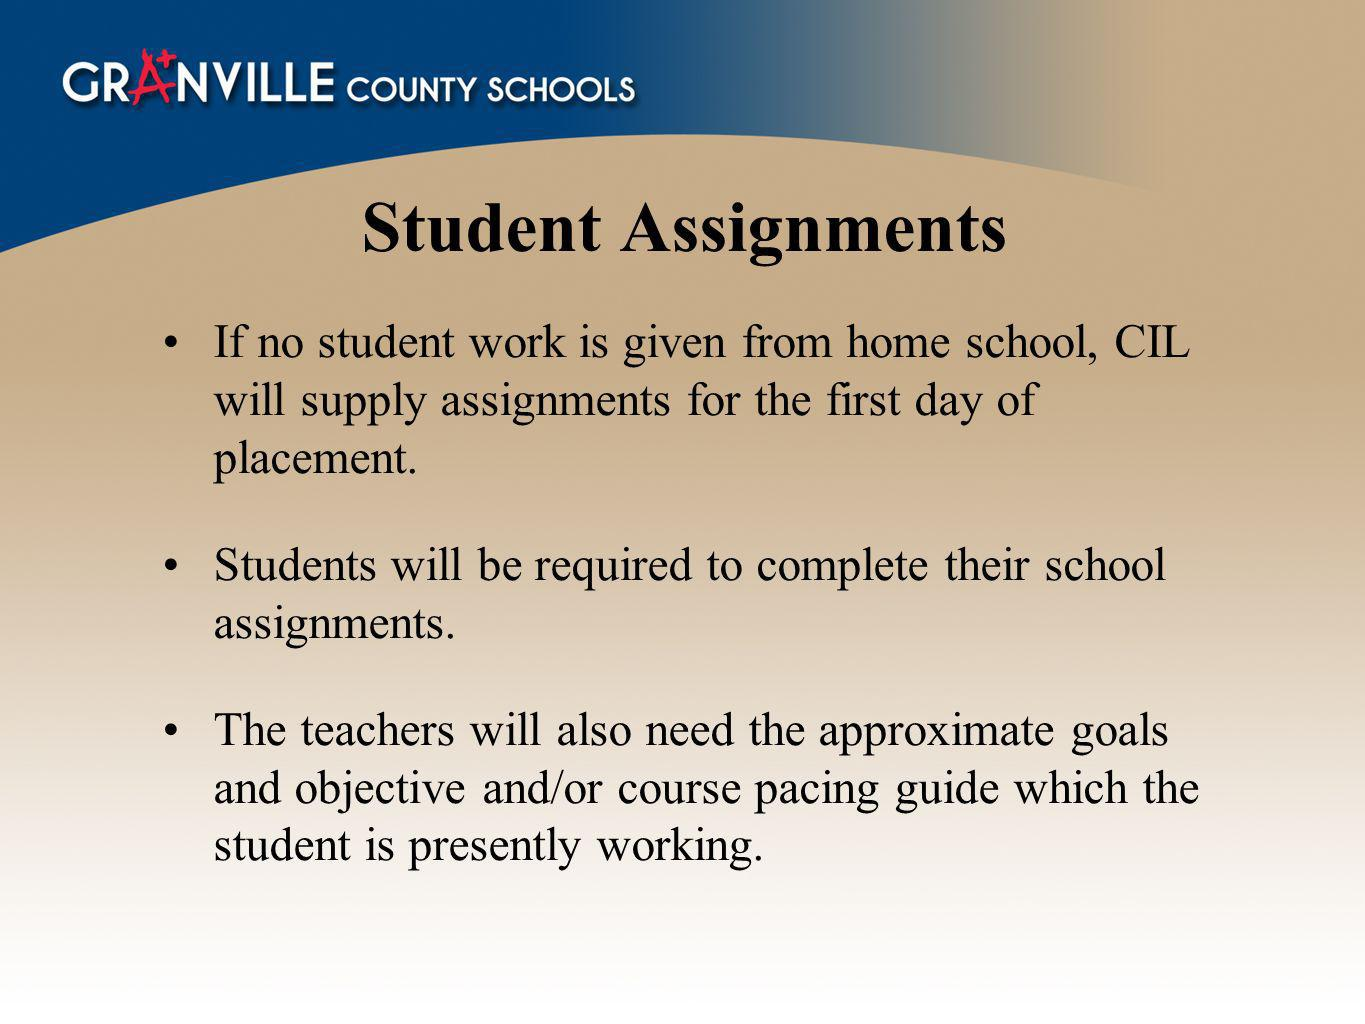 Student Assignments If no student work is given from home school, CIL will supply assignments for the first day of placement. Students will be require